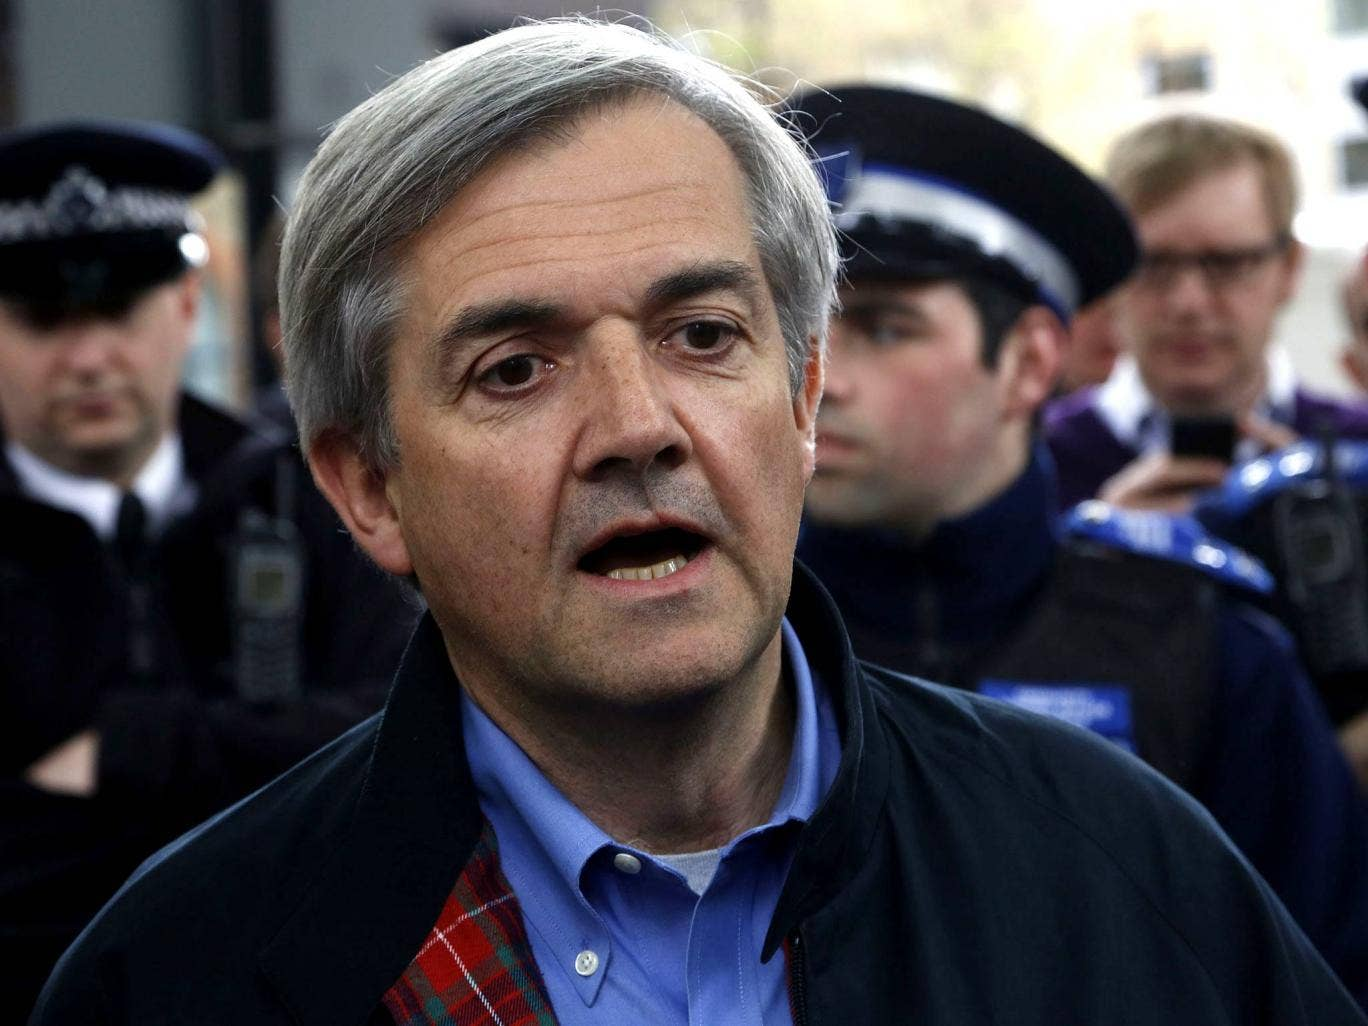 Chris Huhne has said his party, the Liberal Democrats, and Labour could form a 'historic radical coalition'